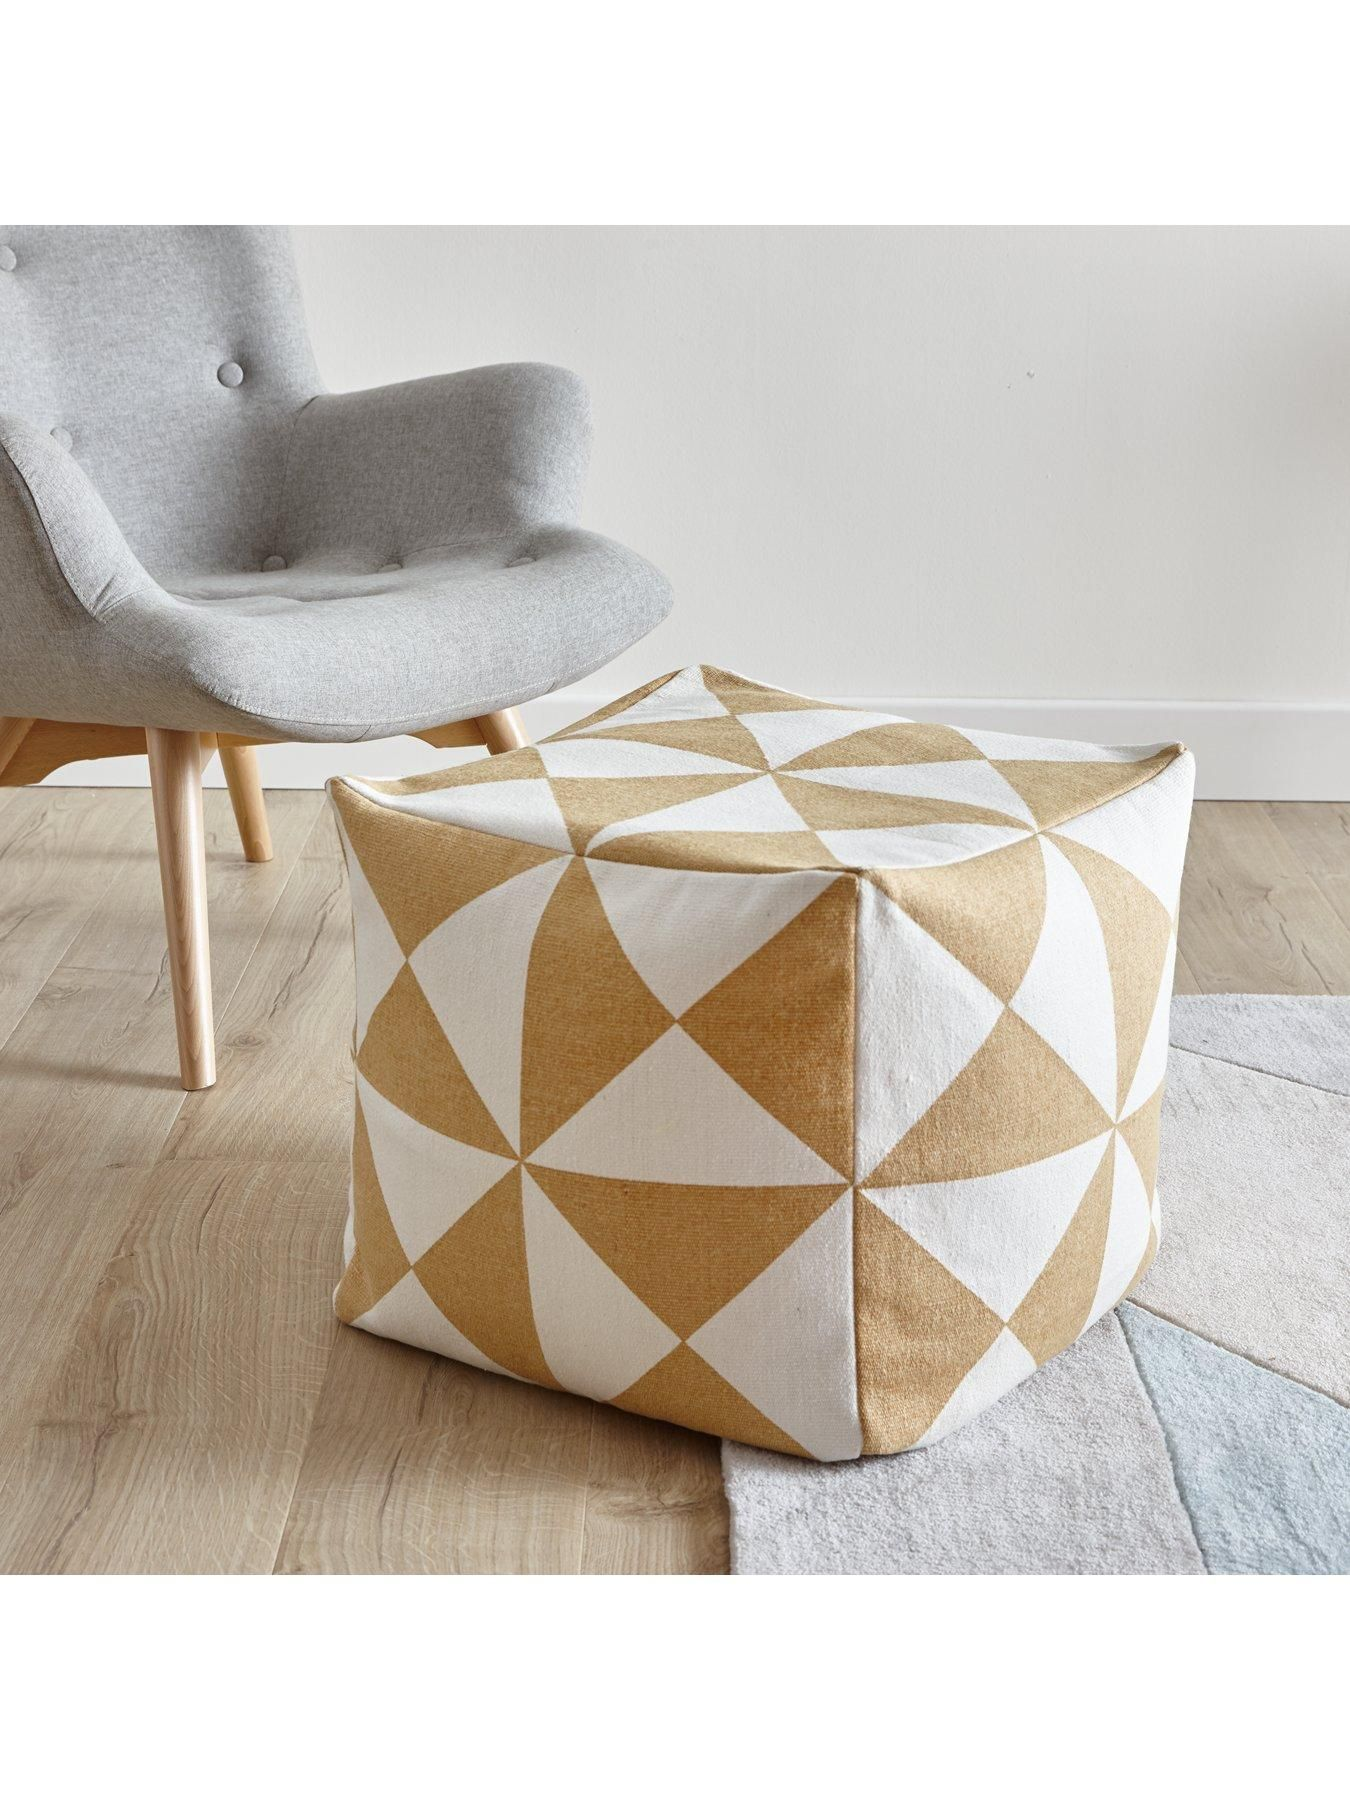 Ideal Home Printed Cotton Bean Cube | Printed cotton, Extra seating ...